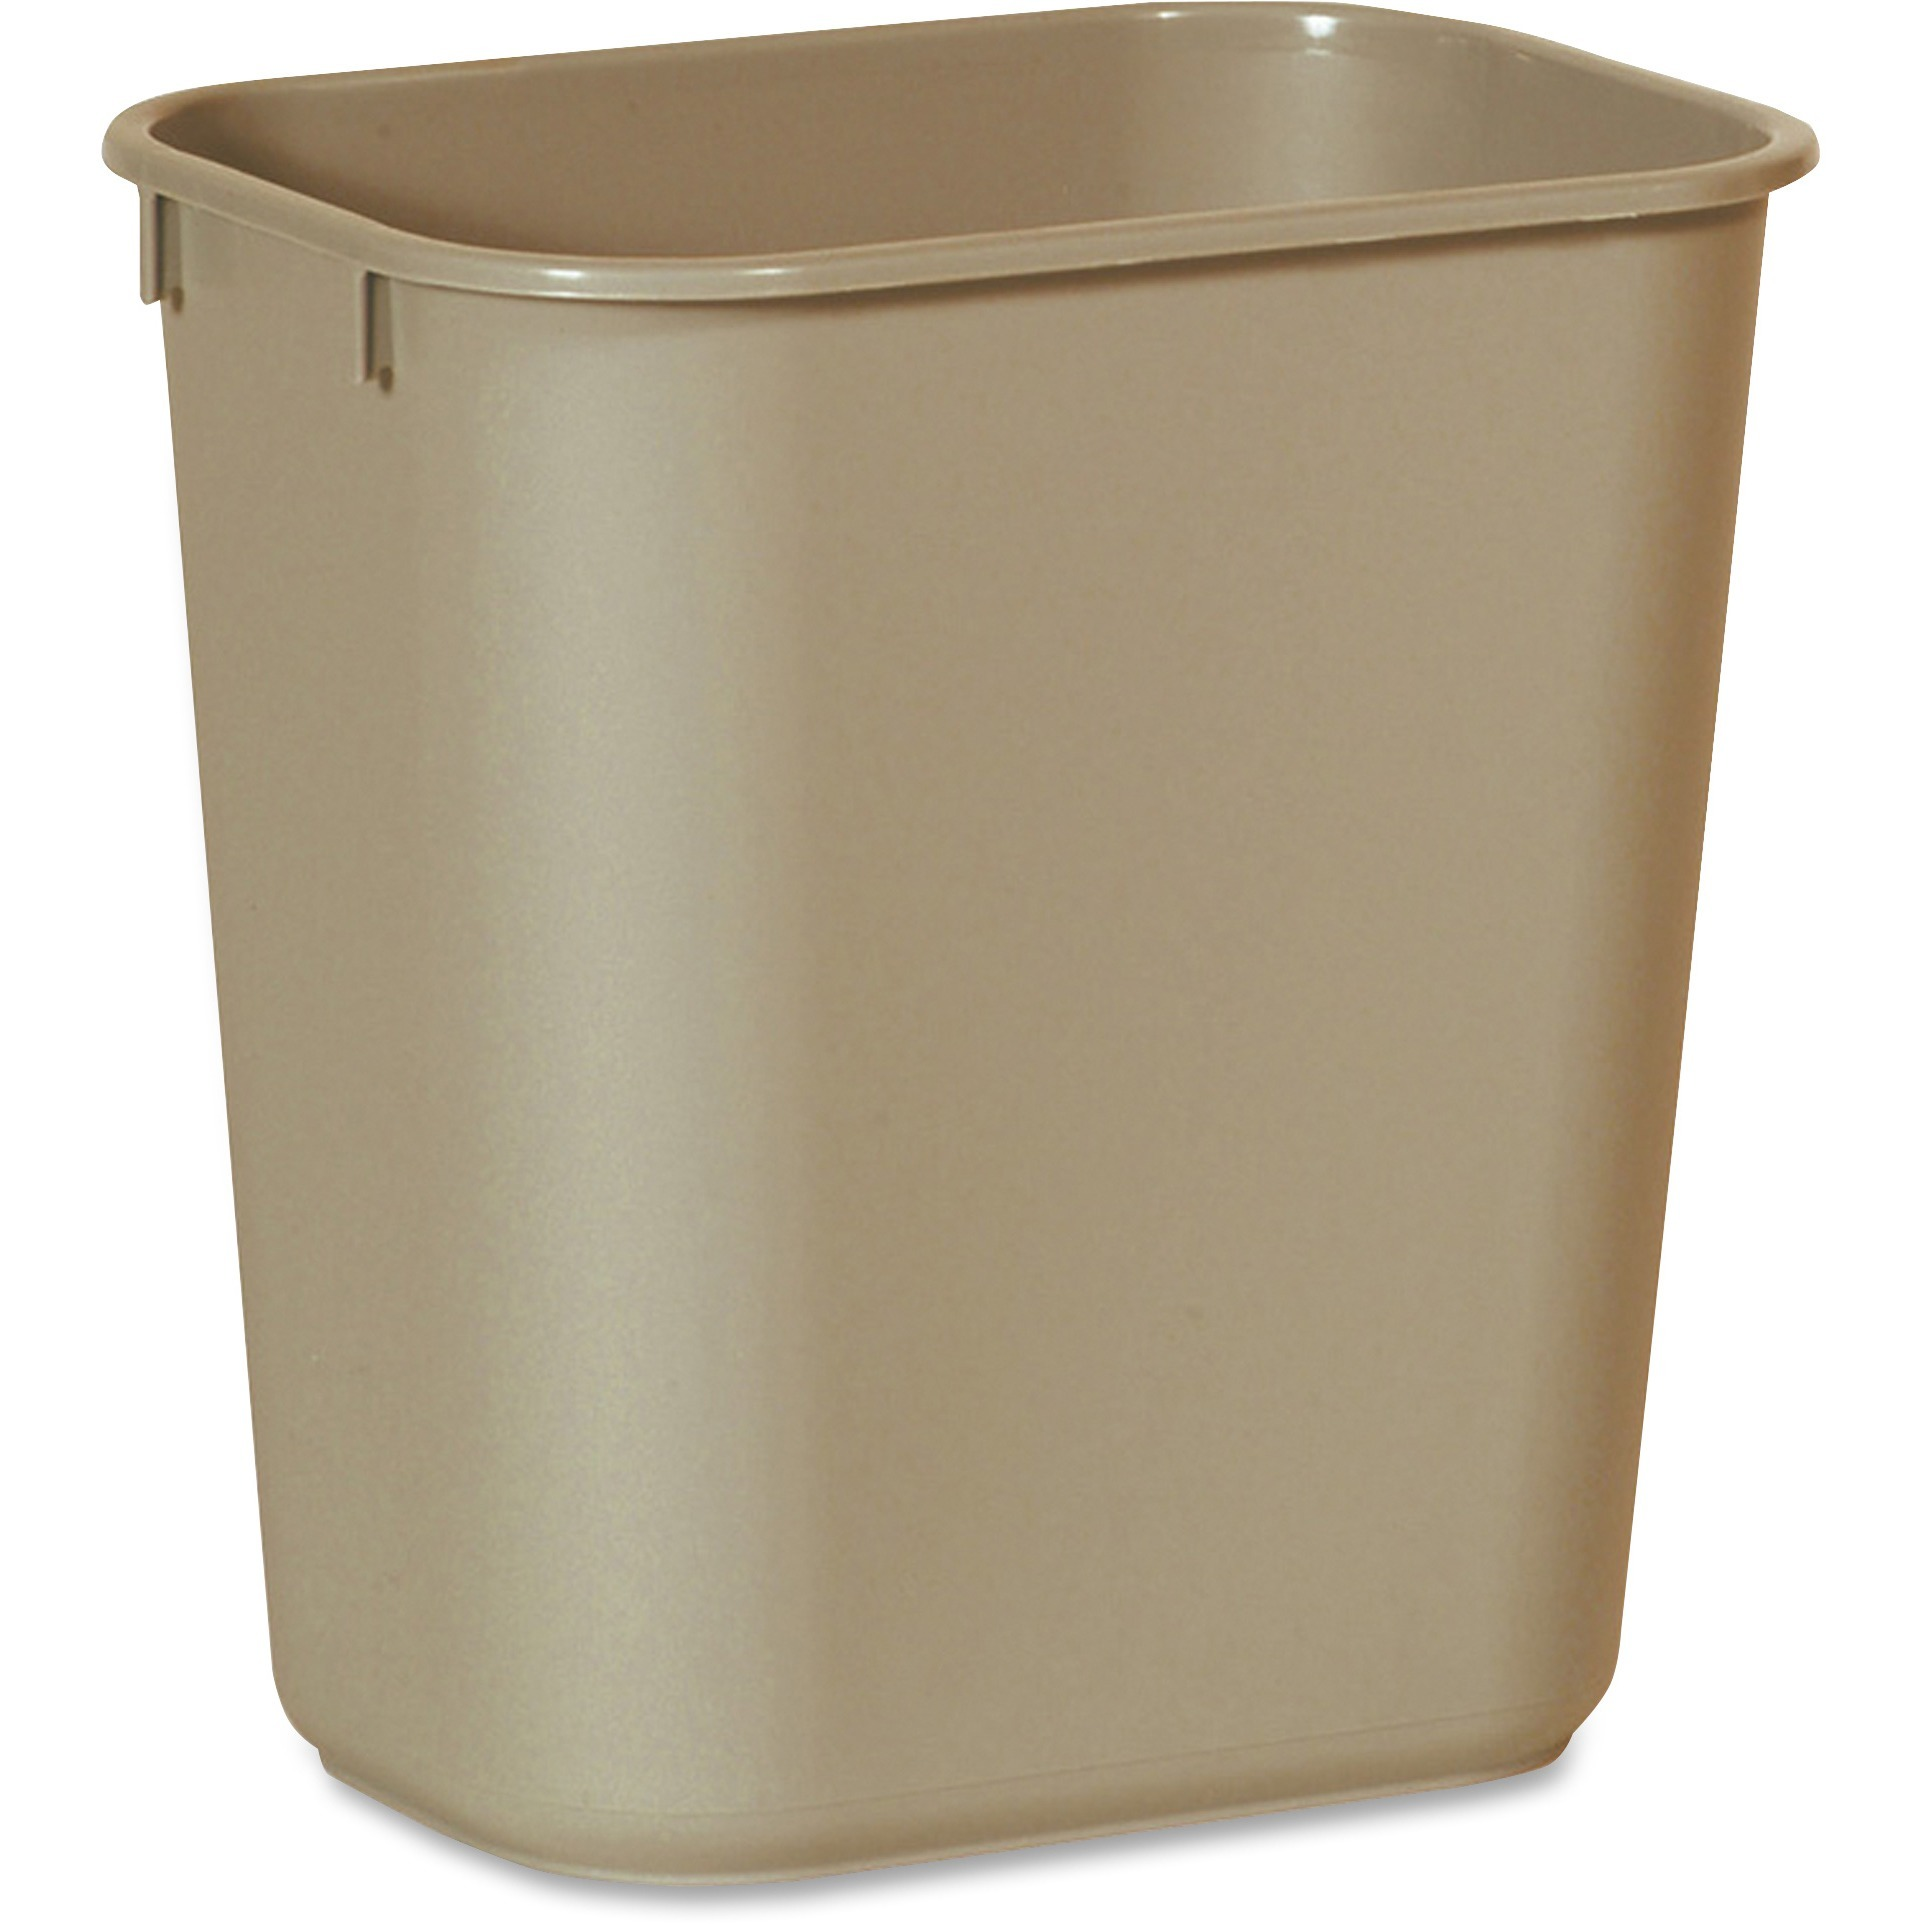 Rubbermaid Commercial, RCP295500BG, Standard Series Wastebaskets, 1, Beige